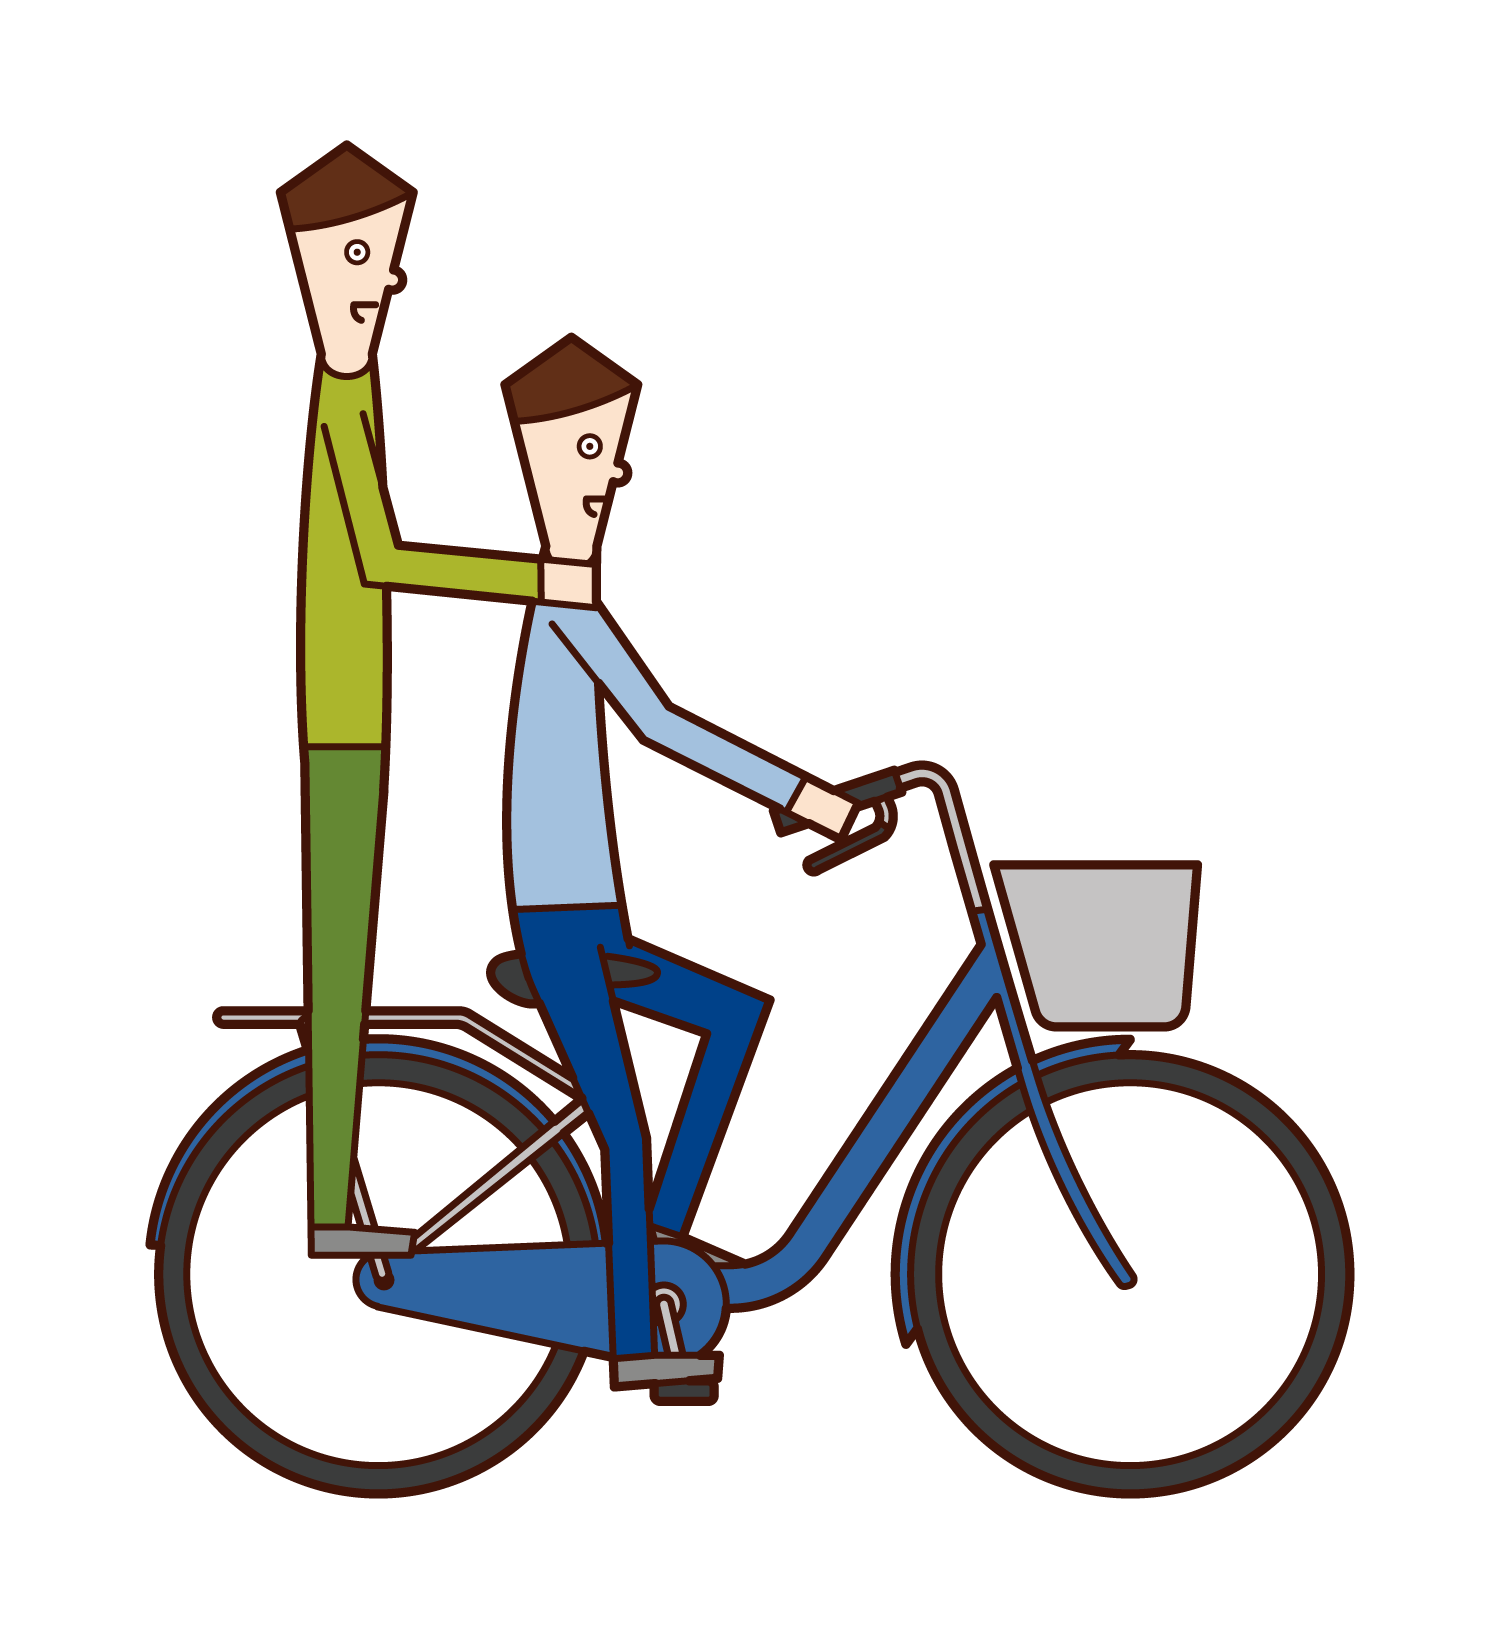 Illustration of a man riding a two-seater on a bicycle